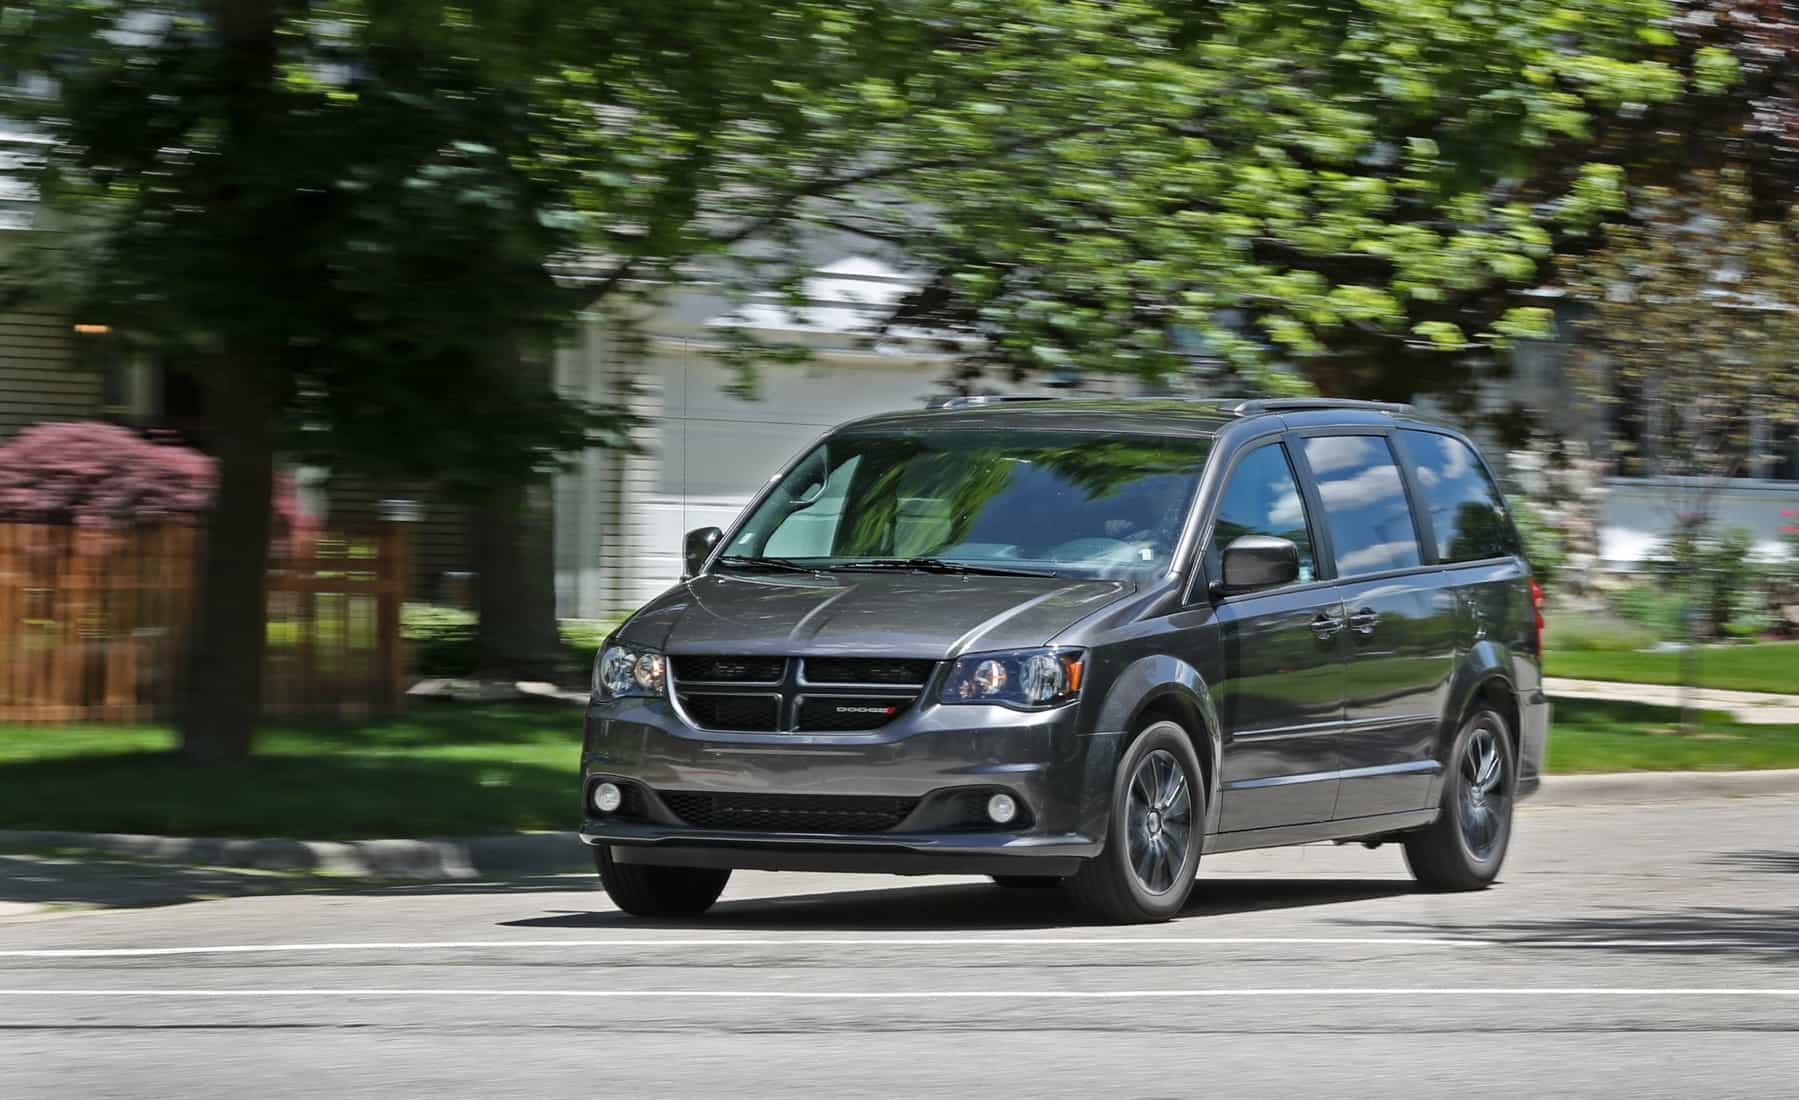 2017 Dodge Grand Caravan Test Drive (Photo 37 of 47)